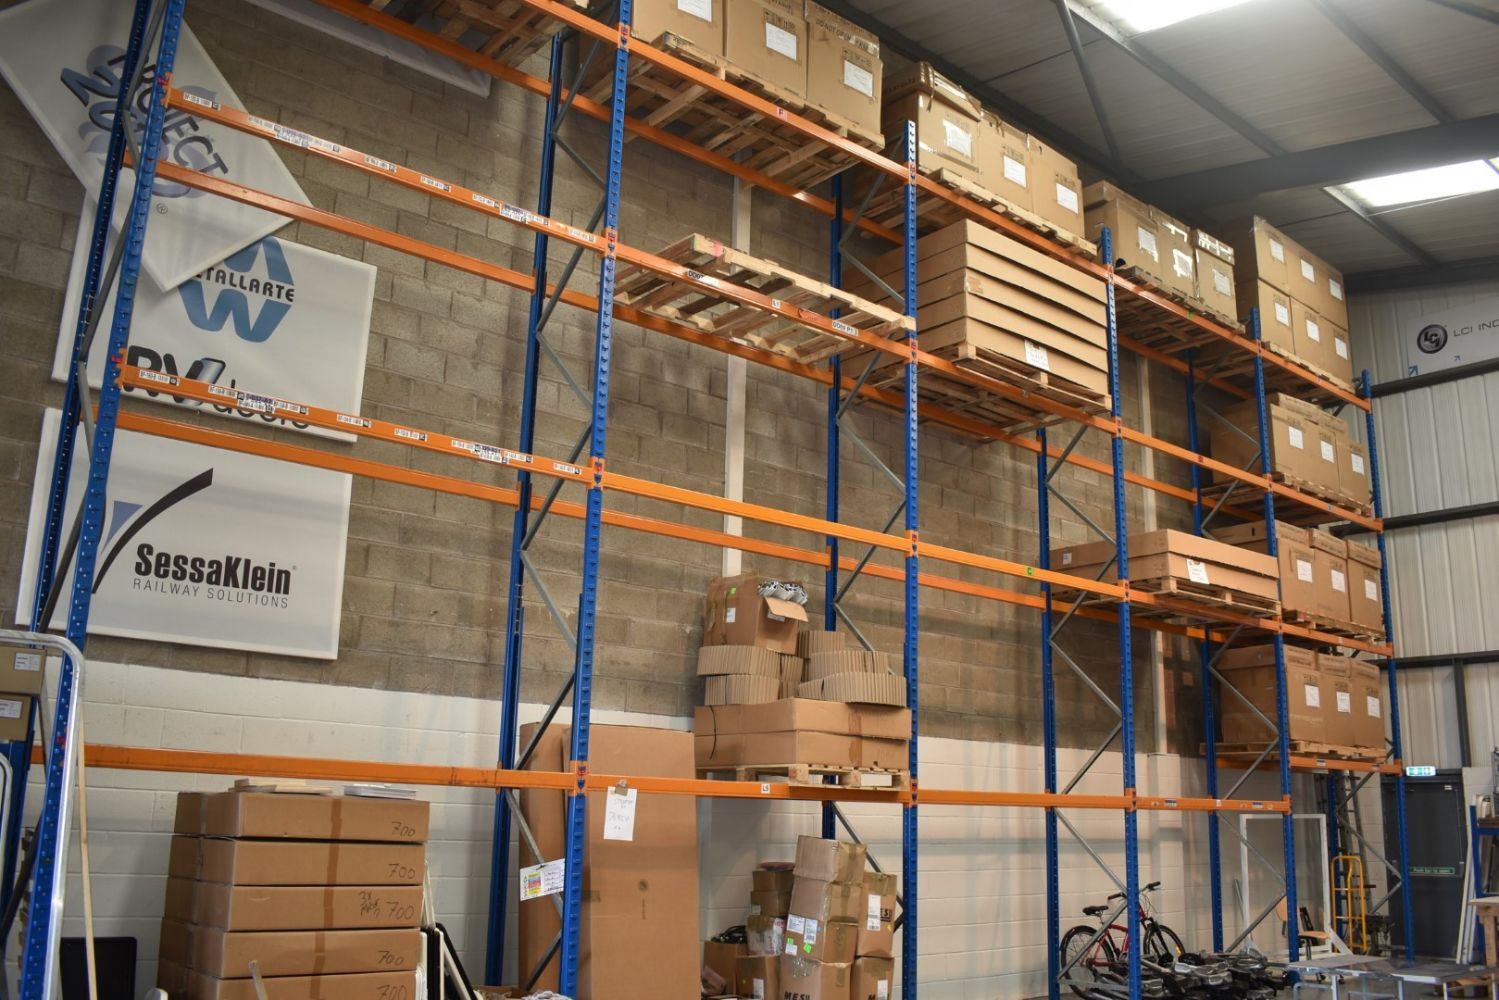 Today: Short Notice Sale in Wakefield - Warehouse Equipment, Catrering Equipment , Racking & More - Plus General Auction, Furniture, Lighting